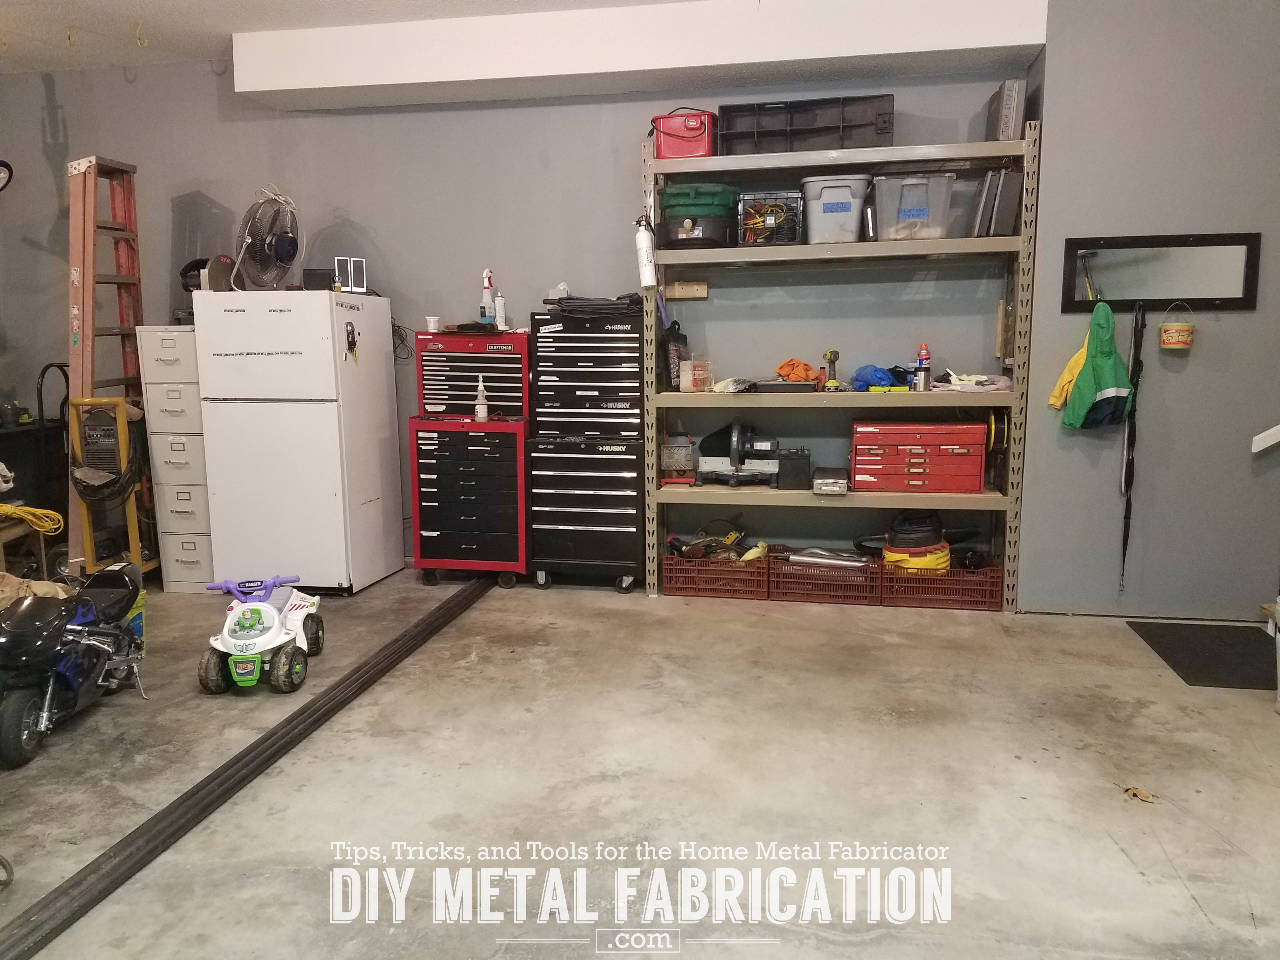 DIY Metal Fabrication Has Moved!